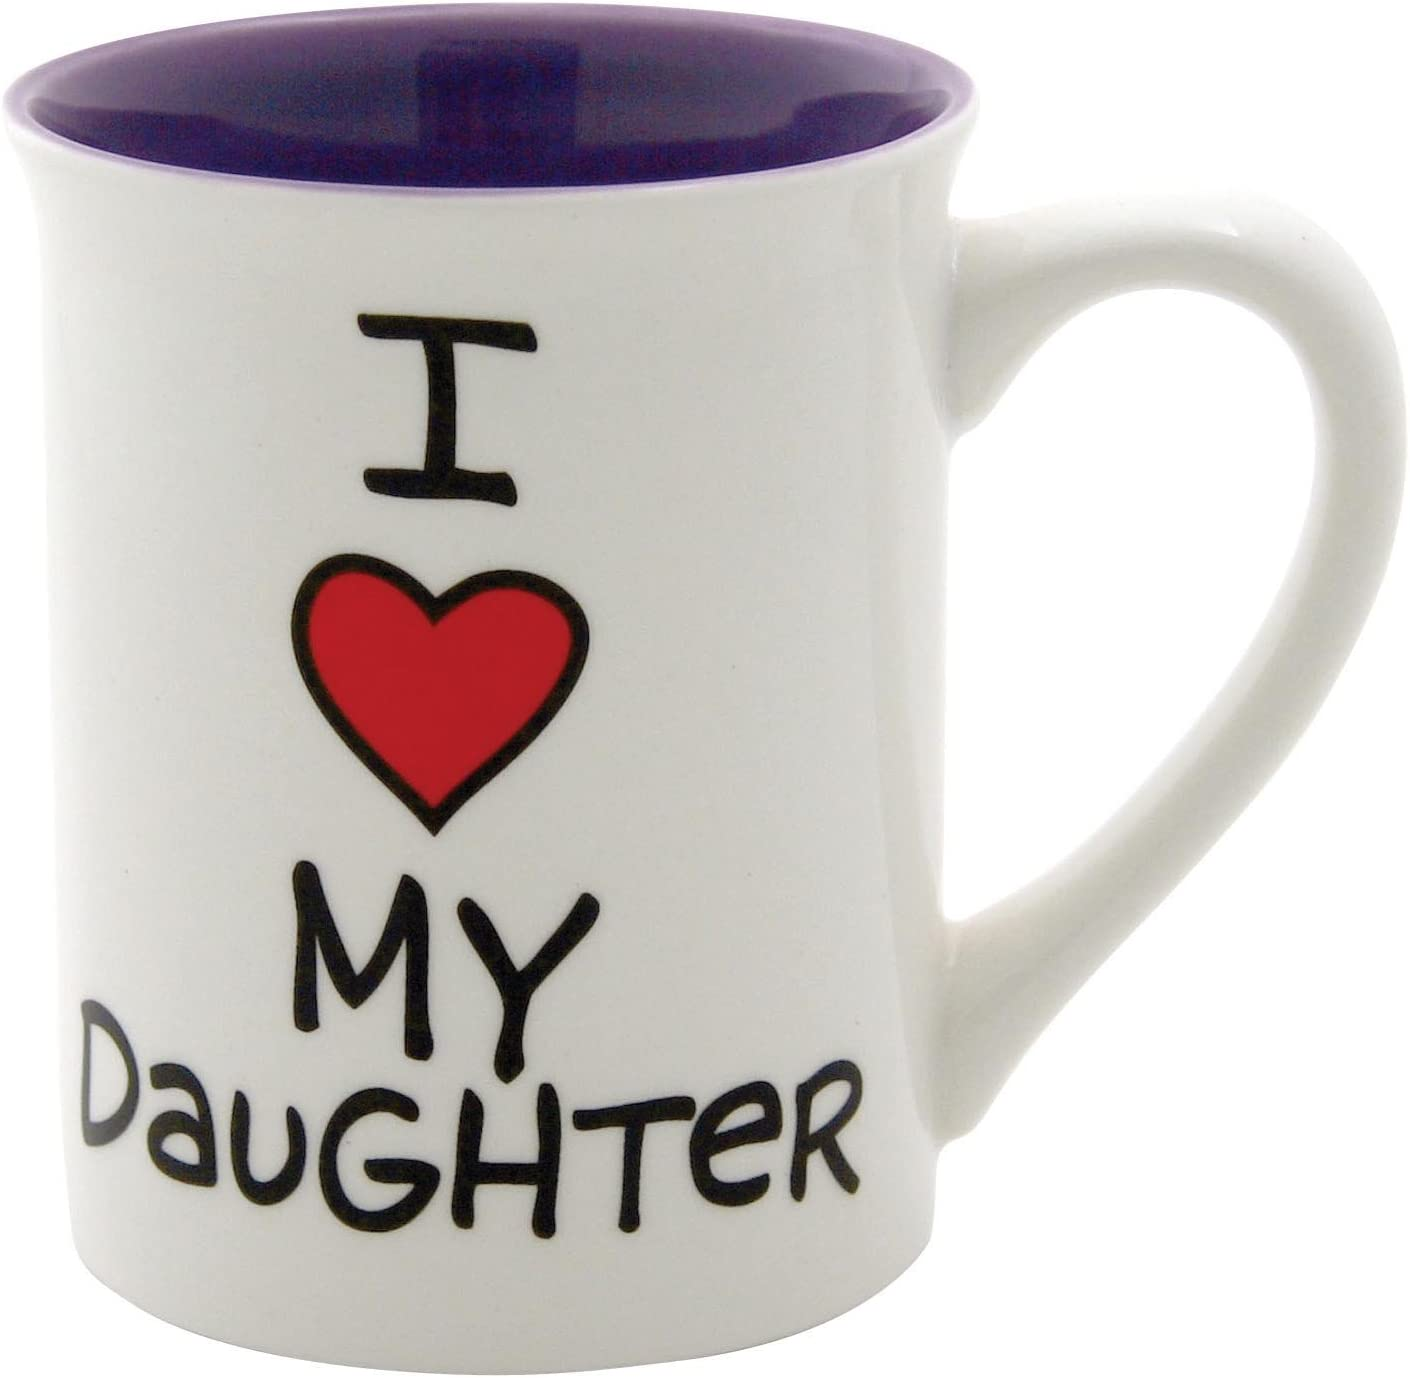 4.5-Inch Enesco ENEYA Our Name is Mud 16-Ounce I Heart My Daughter Mug by Lorrie Veasey